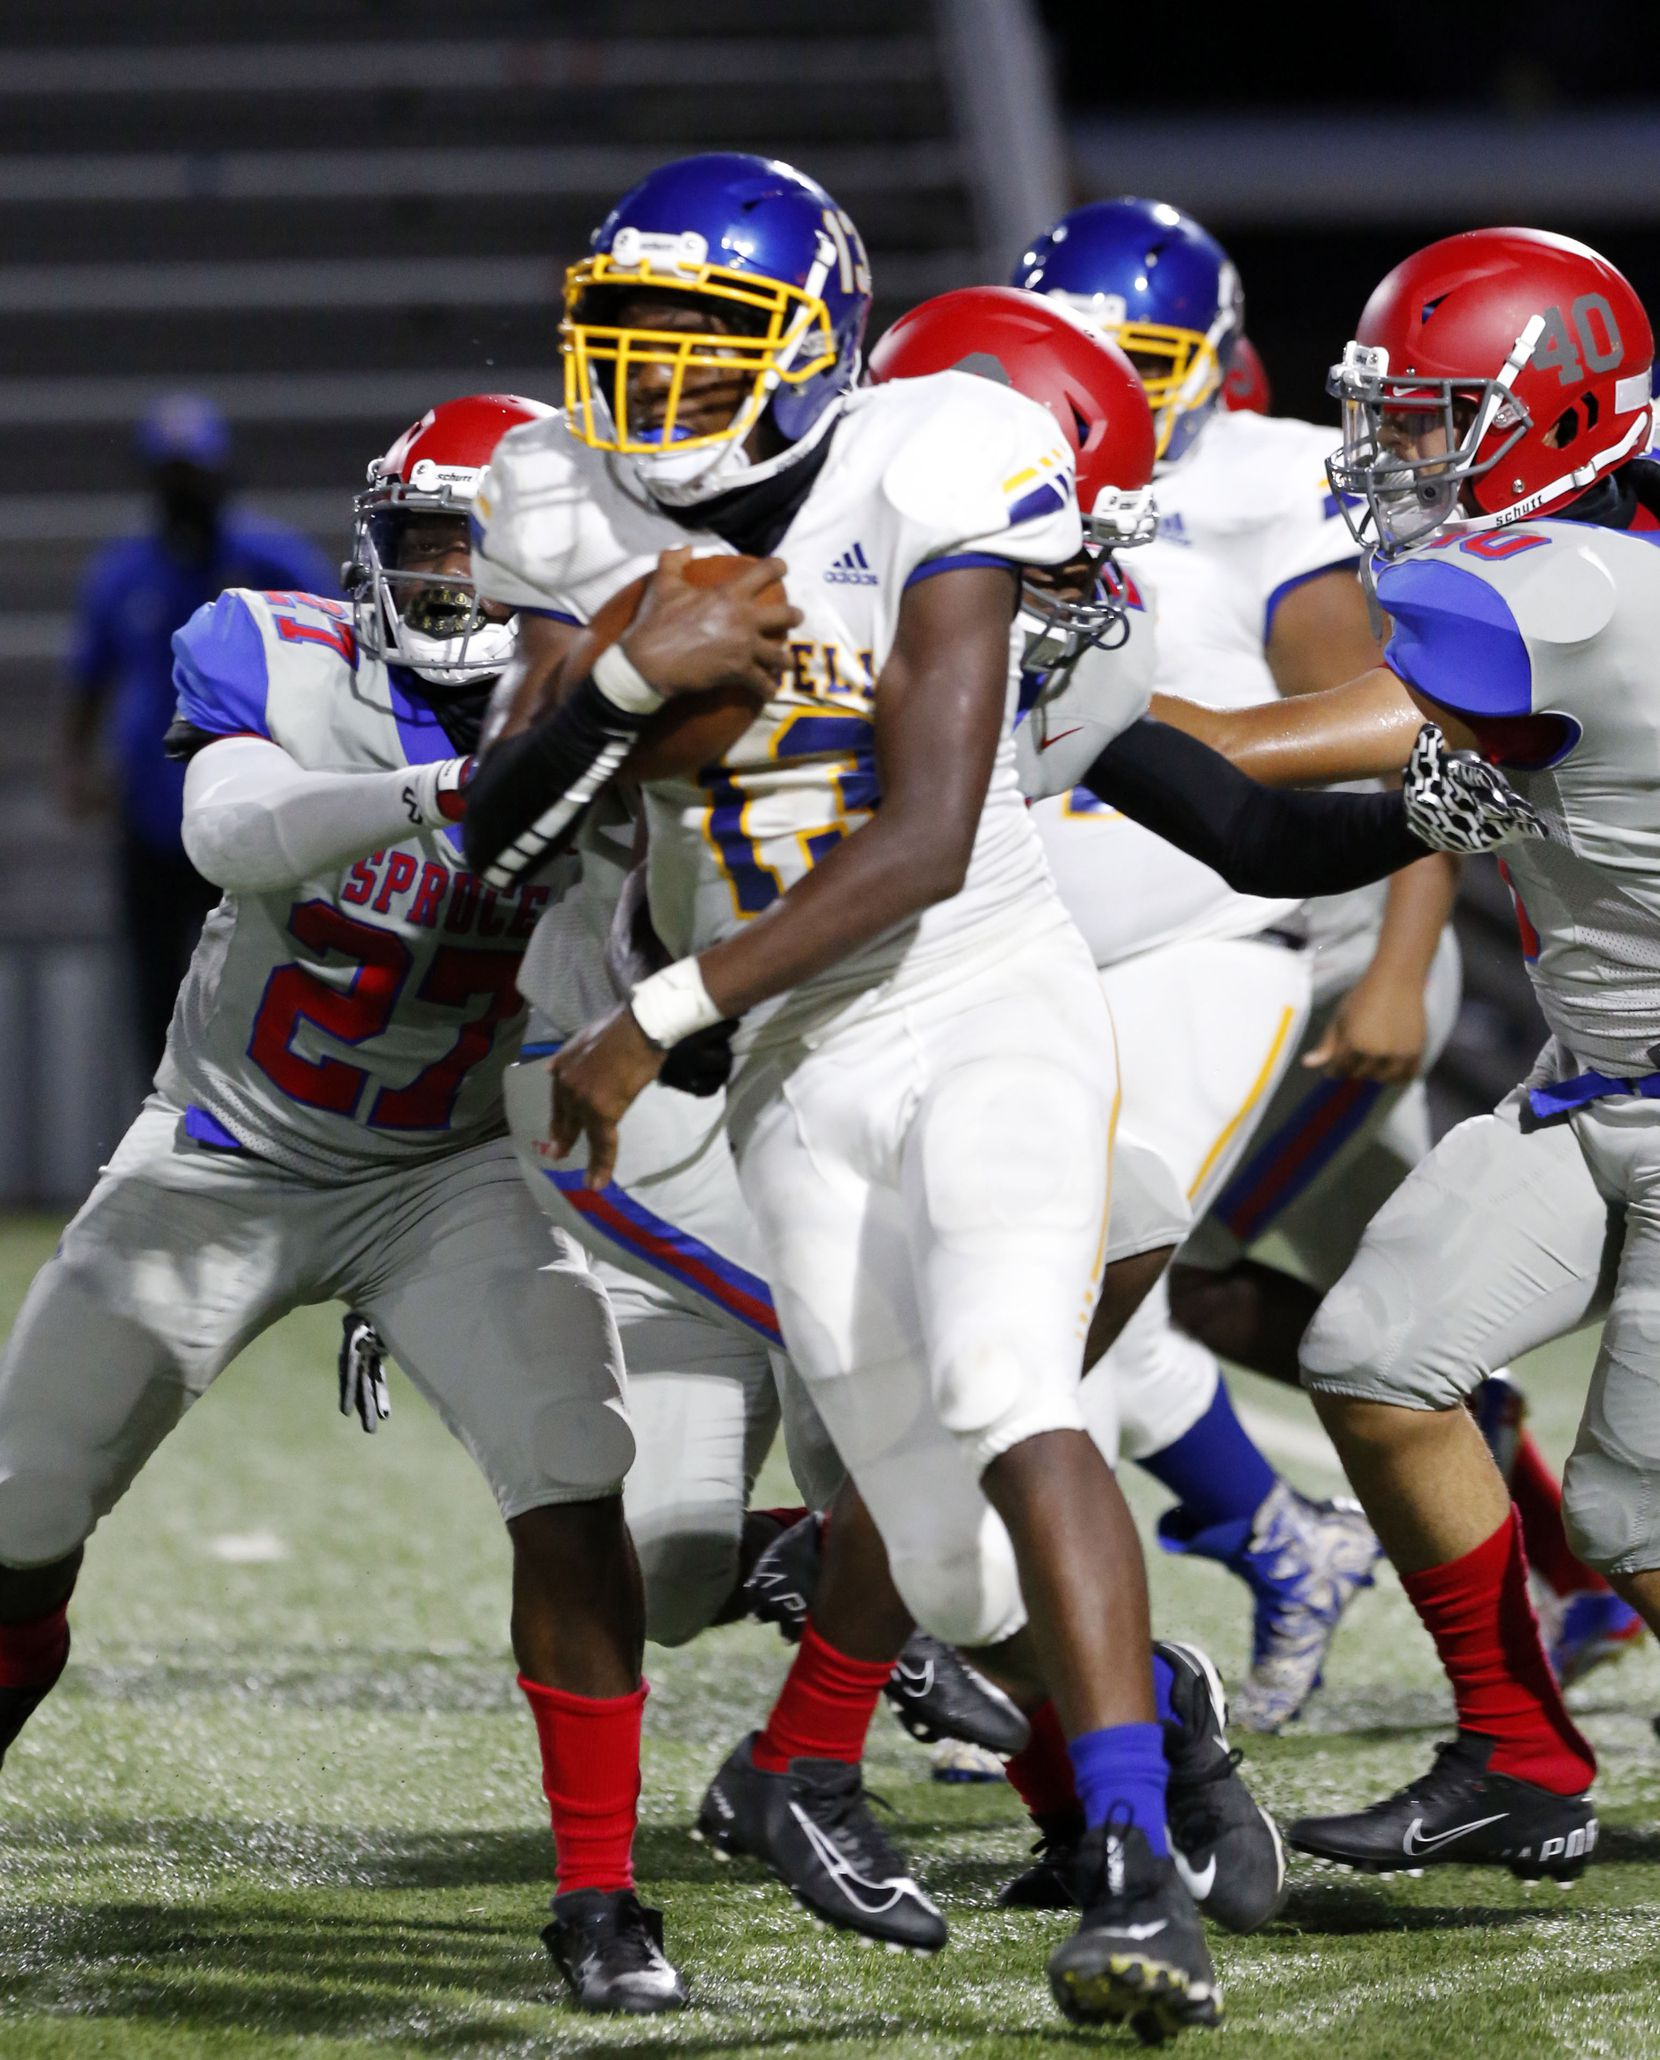 Samuell's De'Quan'Dre Brown (13) picks up a couple of yards during the first half of the season opening high school football game between against Samuell and Spruce High at Pleasant Grove Stadium in Dallas on Friday, August 27, 2021. (John F. Rhodes / Special Contributor)